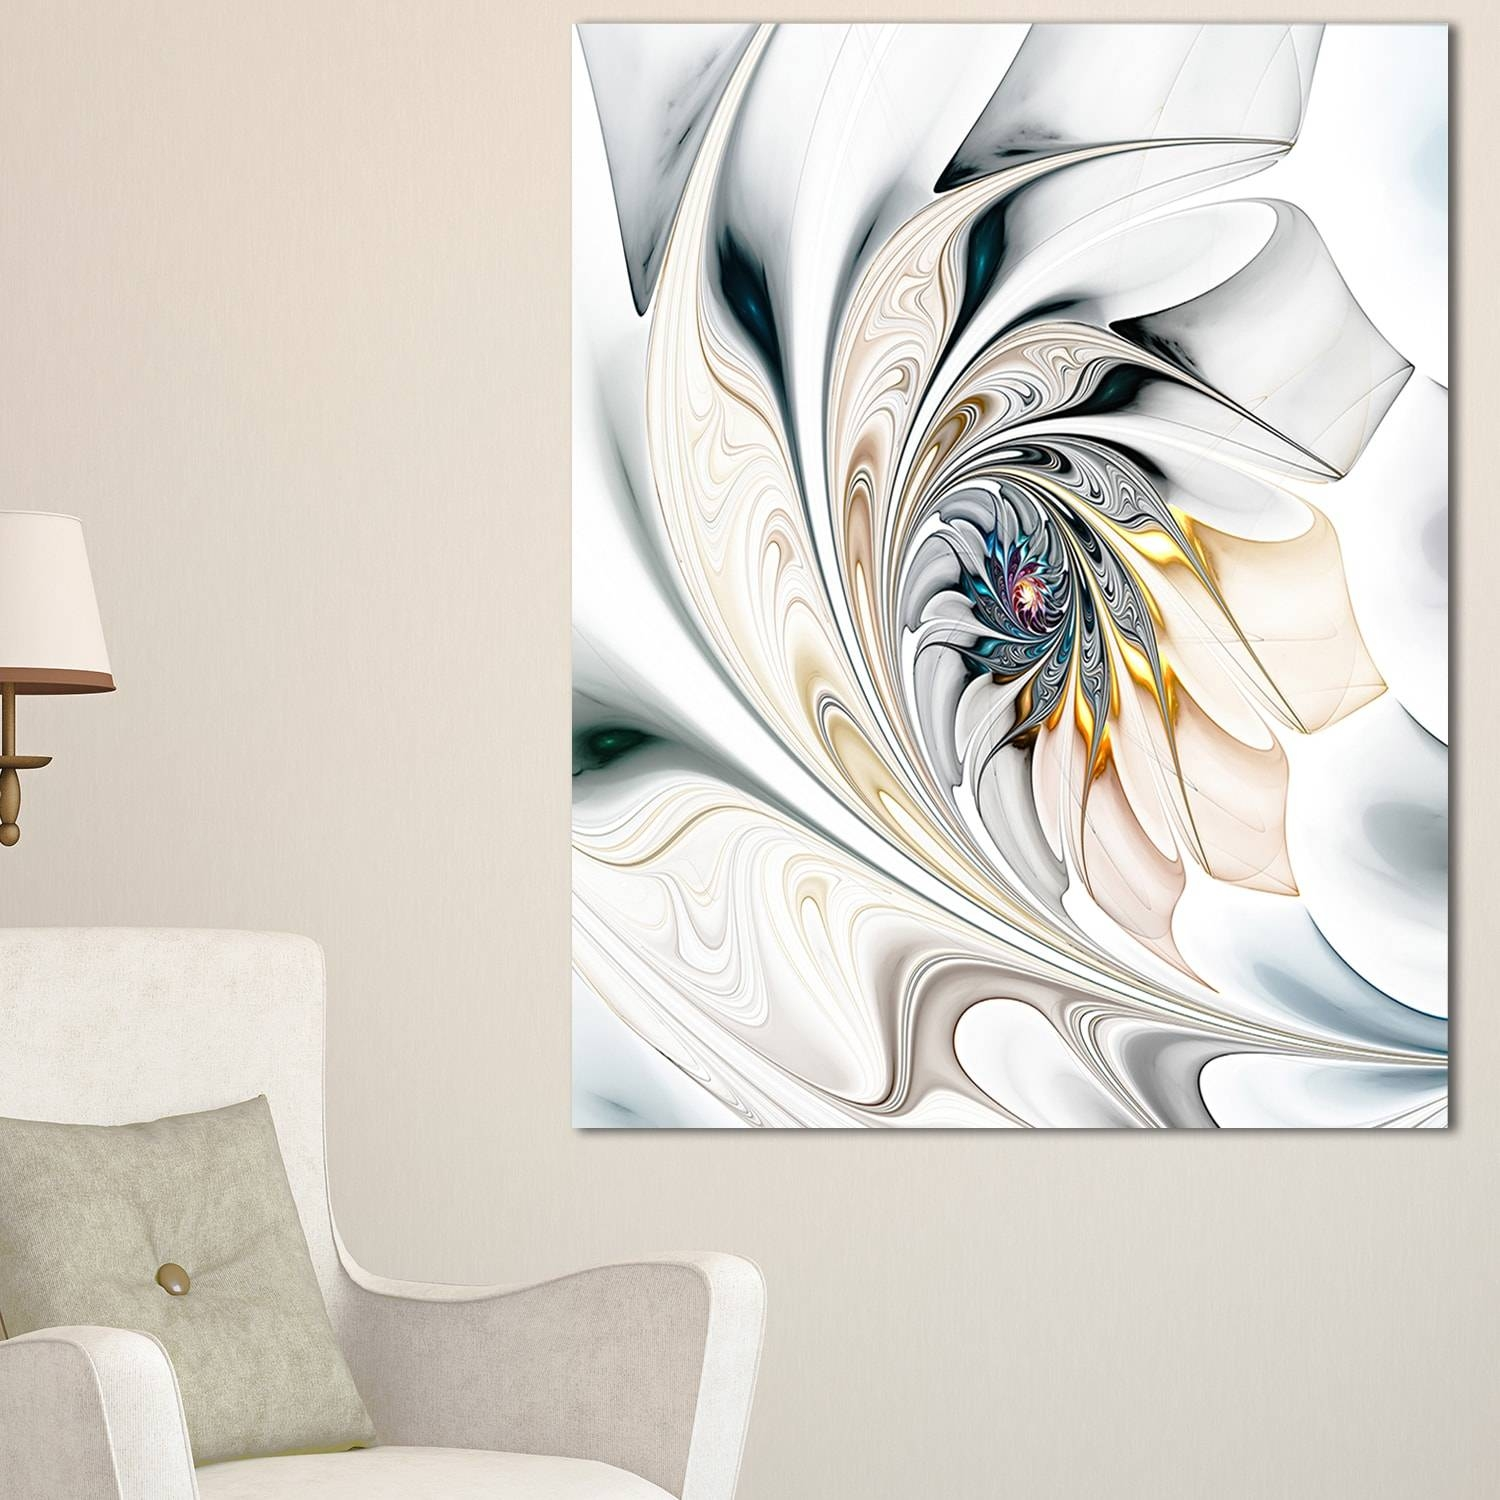 White Stained Glass Floral Art – Large Floral Glossy Metal Wall For Most Up To Date White Metal Wall Art (Gallery 6 of 20)